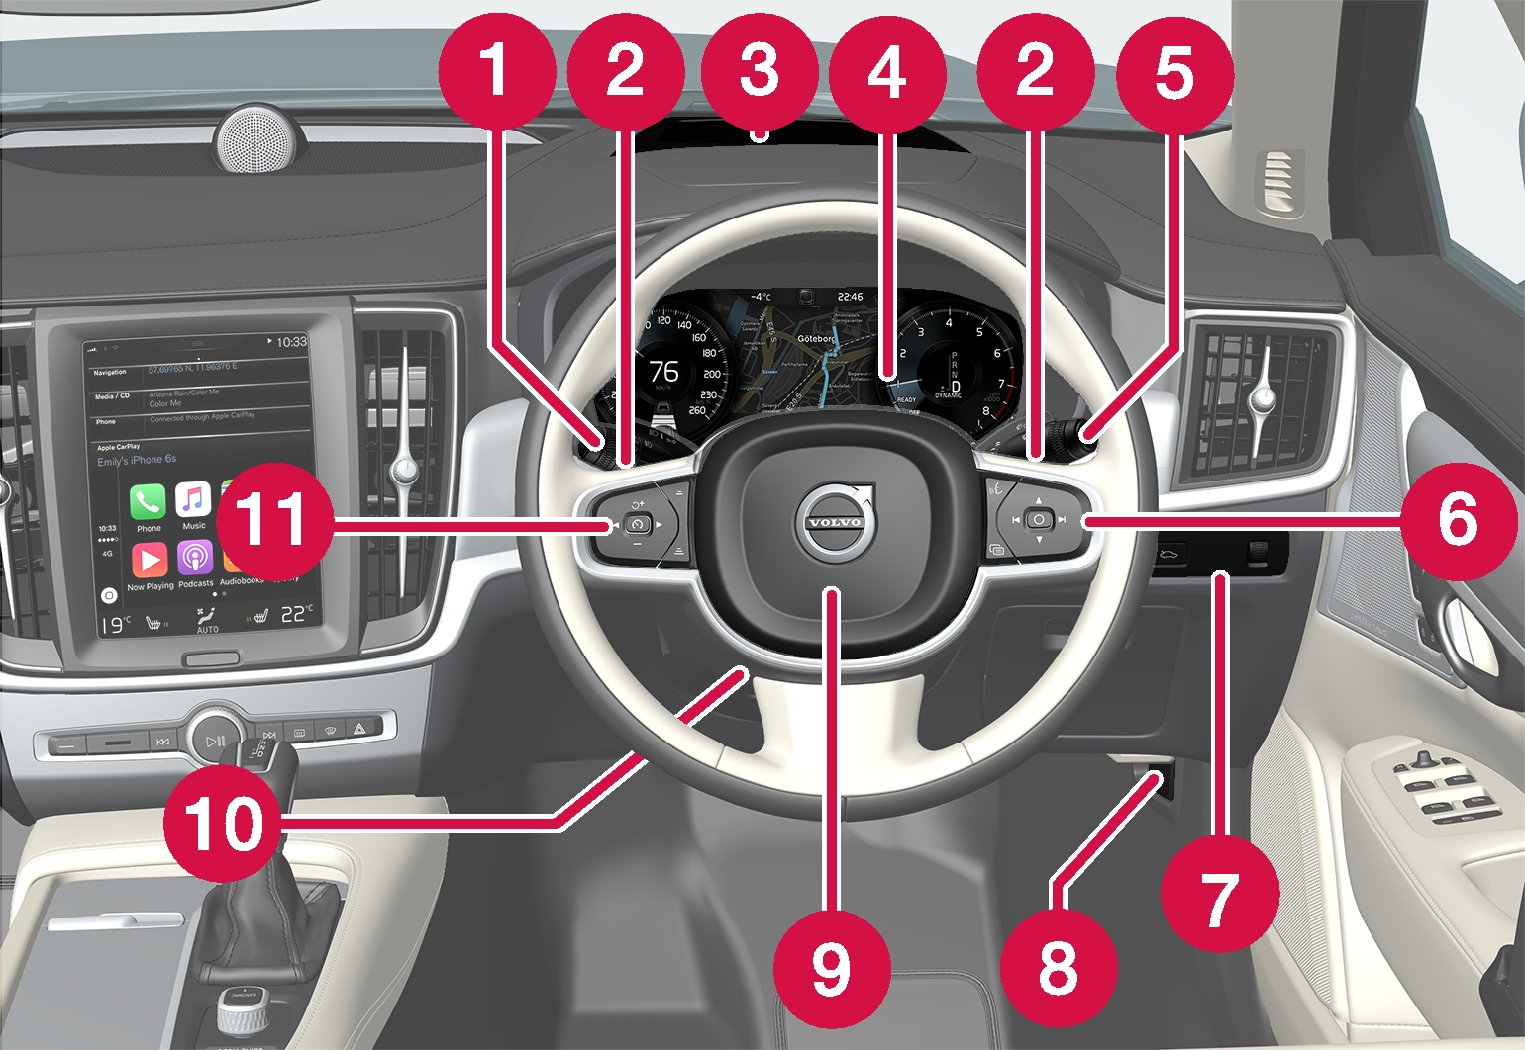 16w17-SPA-Instruments and controls 1 right hand drive